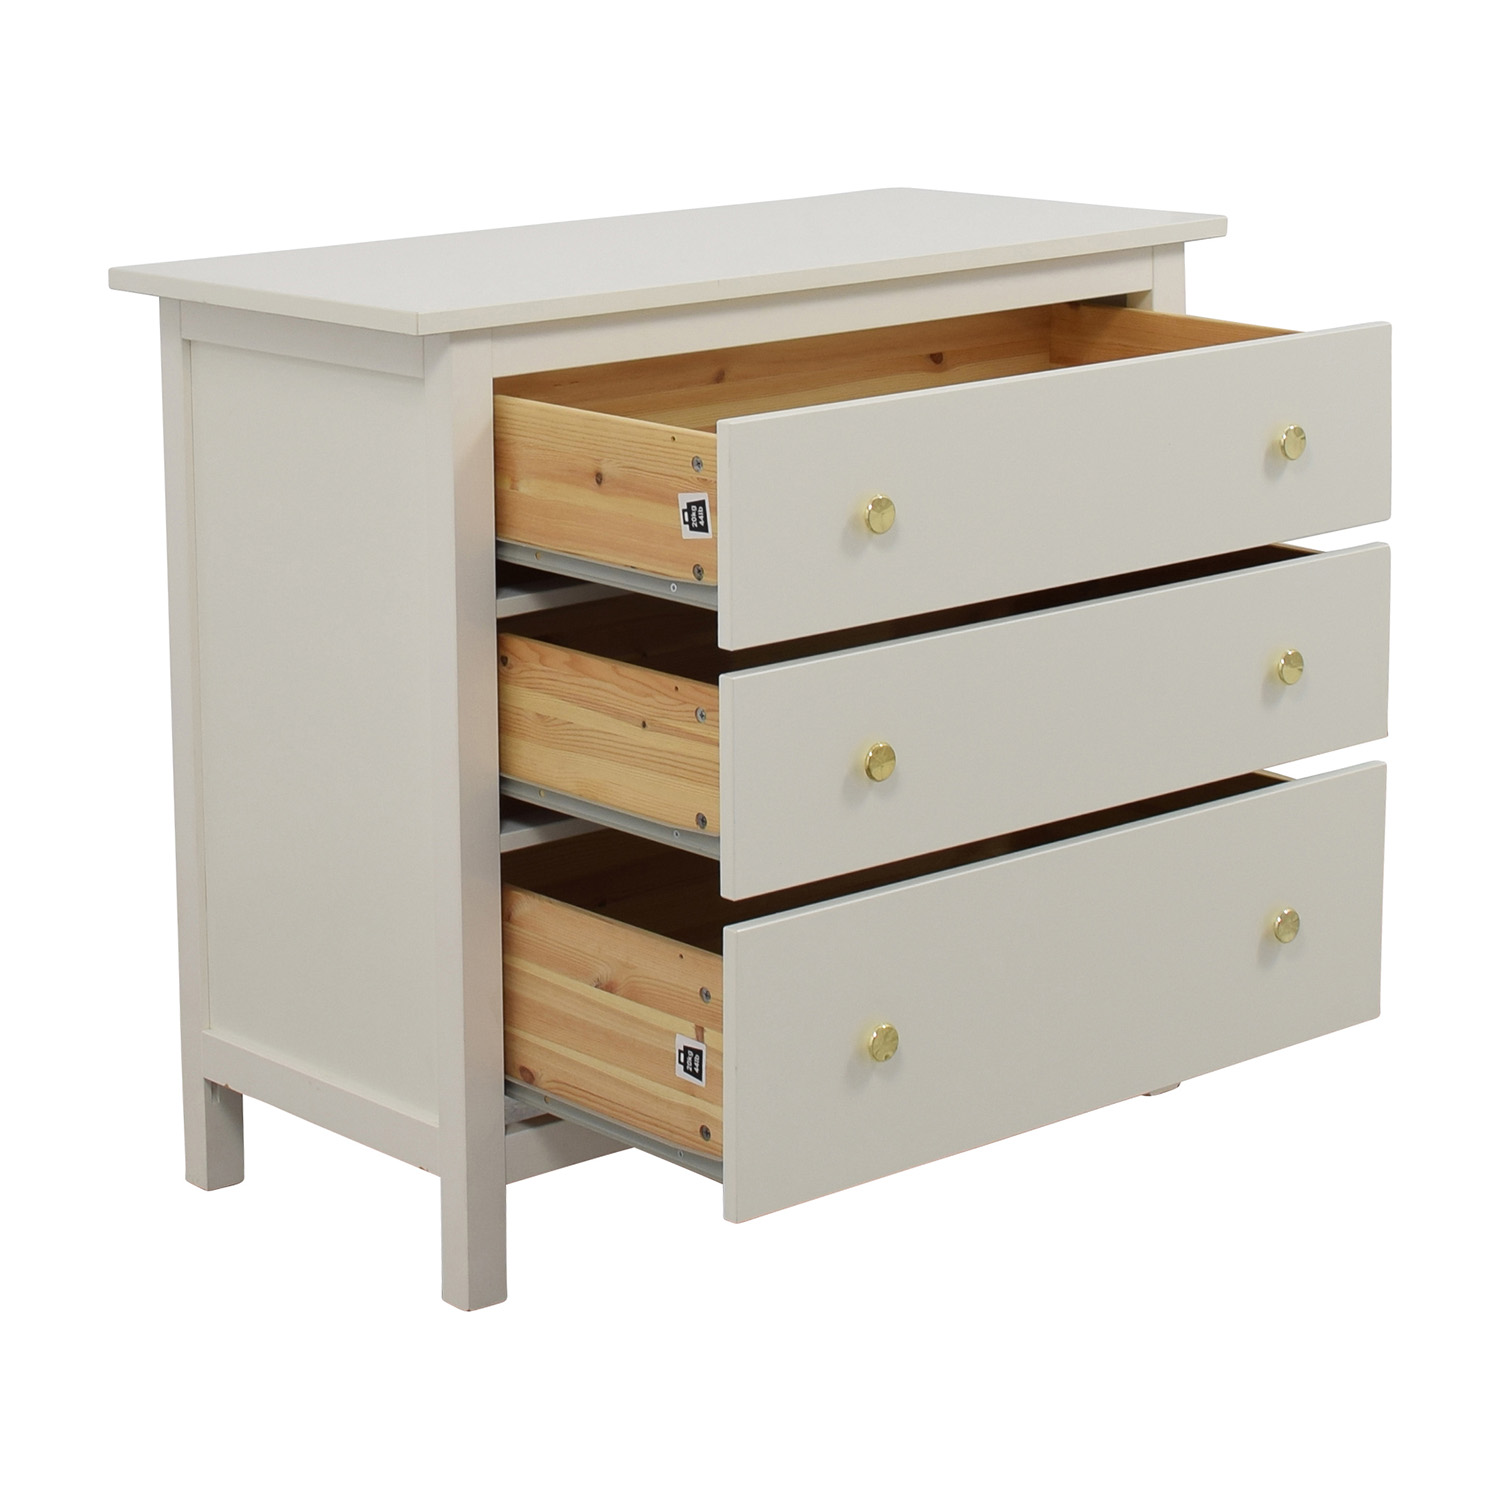 IKEA IKEA Hemnes Three-Drawer Dresser